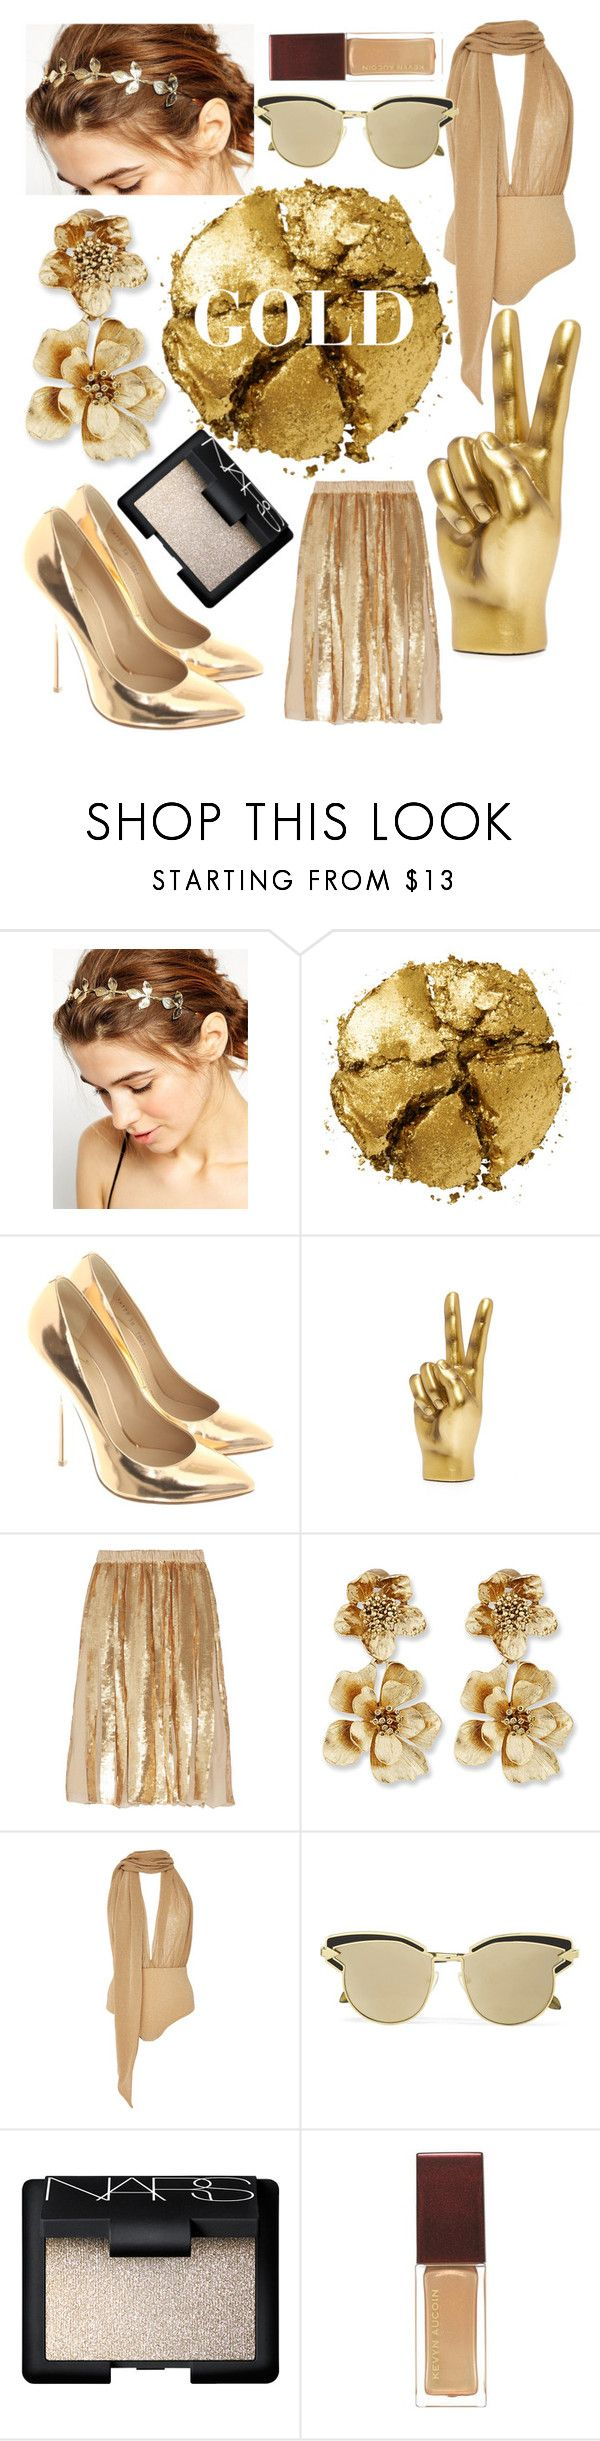 """nothing gold can stay"" by vperkins9 ❤ liked on Polyvore featuring WithChic, Pat McGrath, Giuseppe Zanotti, TIBI, Oscar de la Renta, Água de Coco, Karen Walker and NARS Cosmetics"